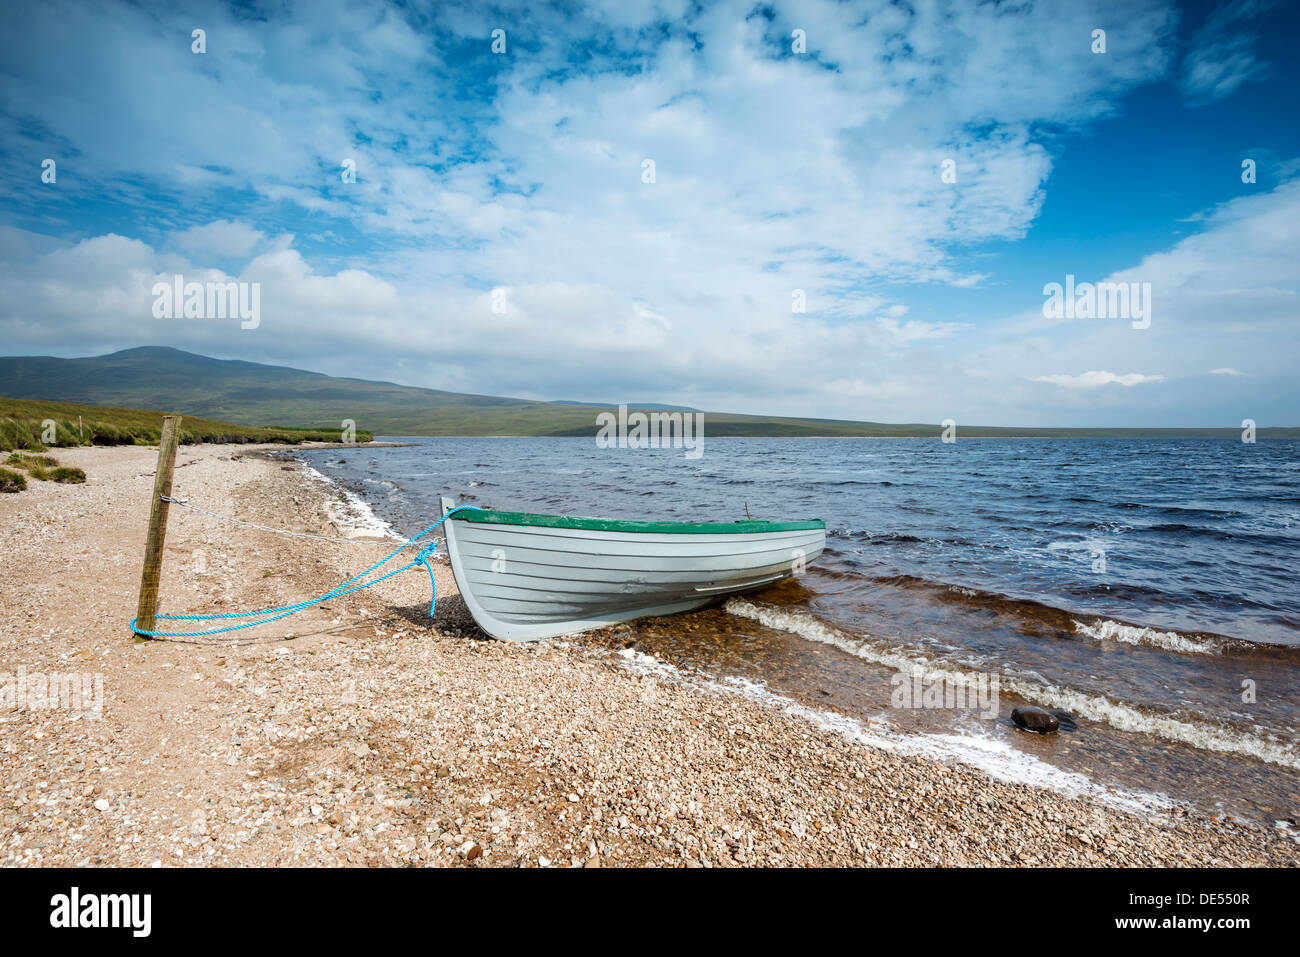 Fishing boat on the shore of Loch Loyal, Sutherland, Scotland, Great Britain, Europe - Stock Image